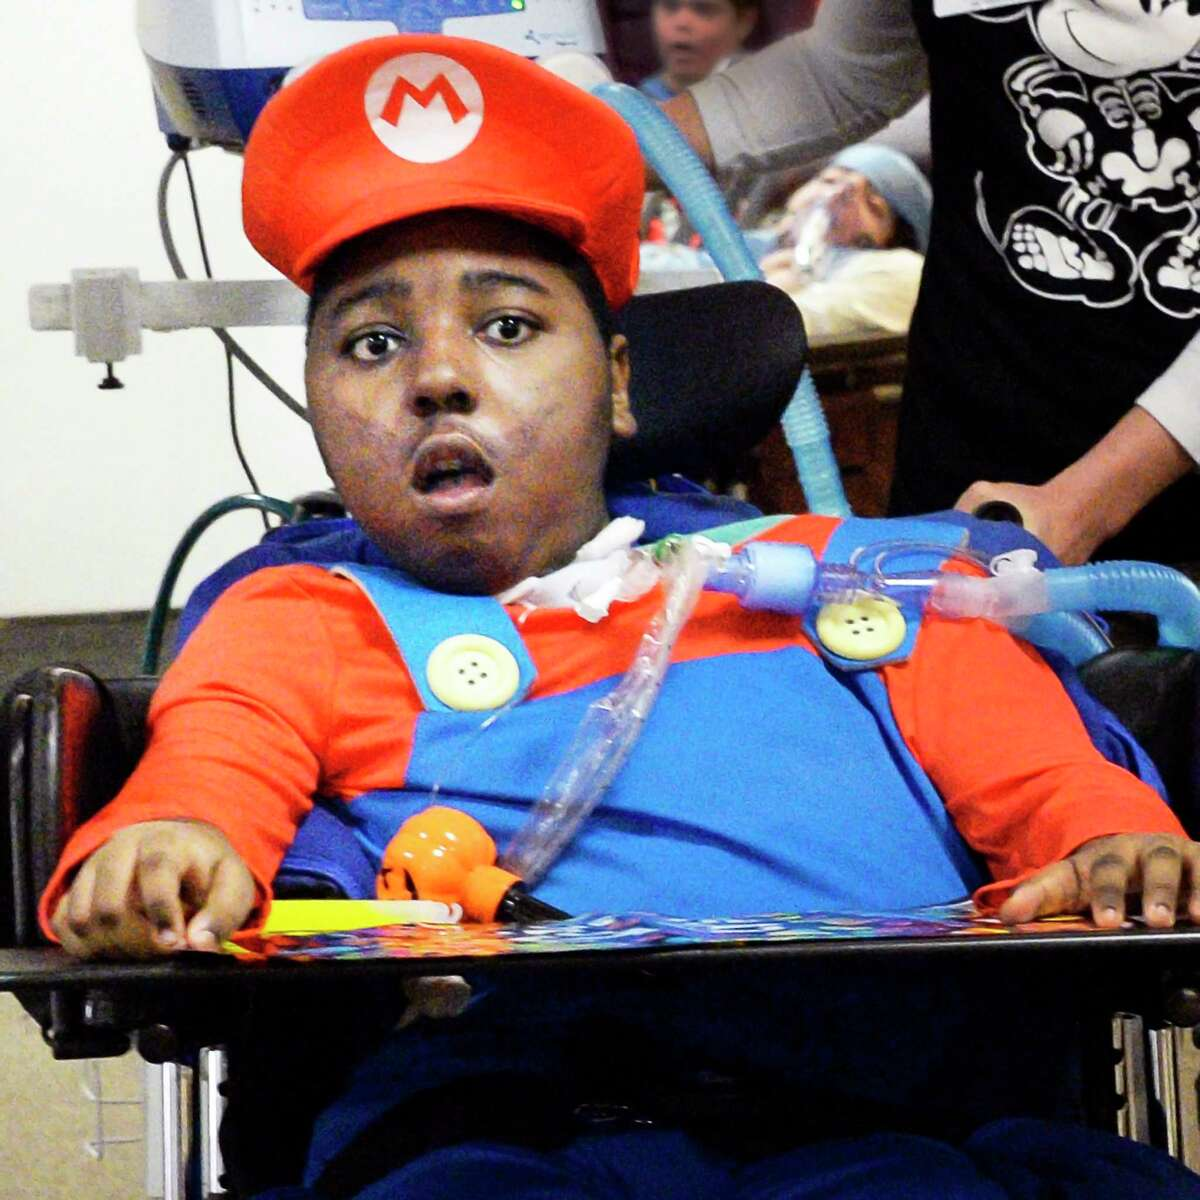 Isiah Julius, 12, wears his Super Mario costume during the 7th annual Halloween parade for pediatric unit patients at Pathways Nursing and Rehabilitation Wednesday Oct. 31, 2018 in Niskayuna, NY. (John Carl D'Annibale/Times Union)